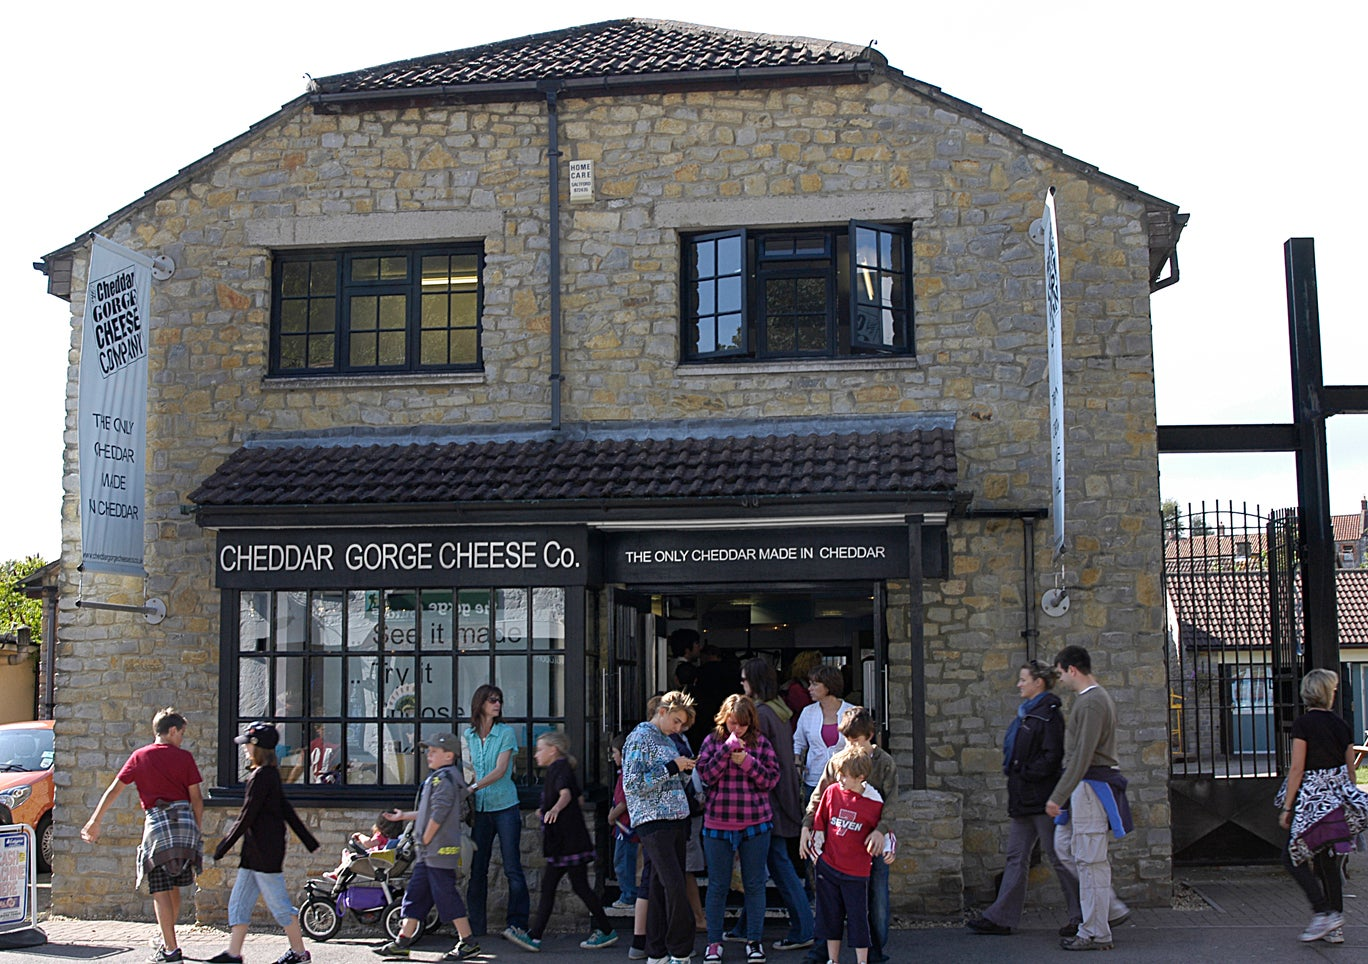 Cheddar Gorge Cheese Co.